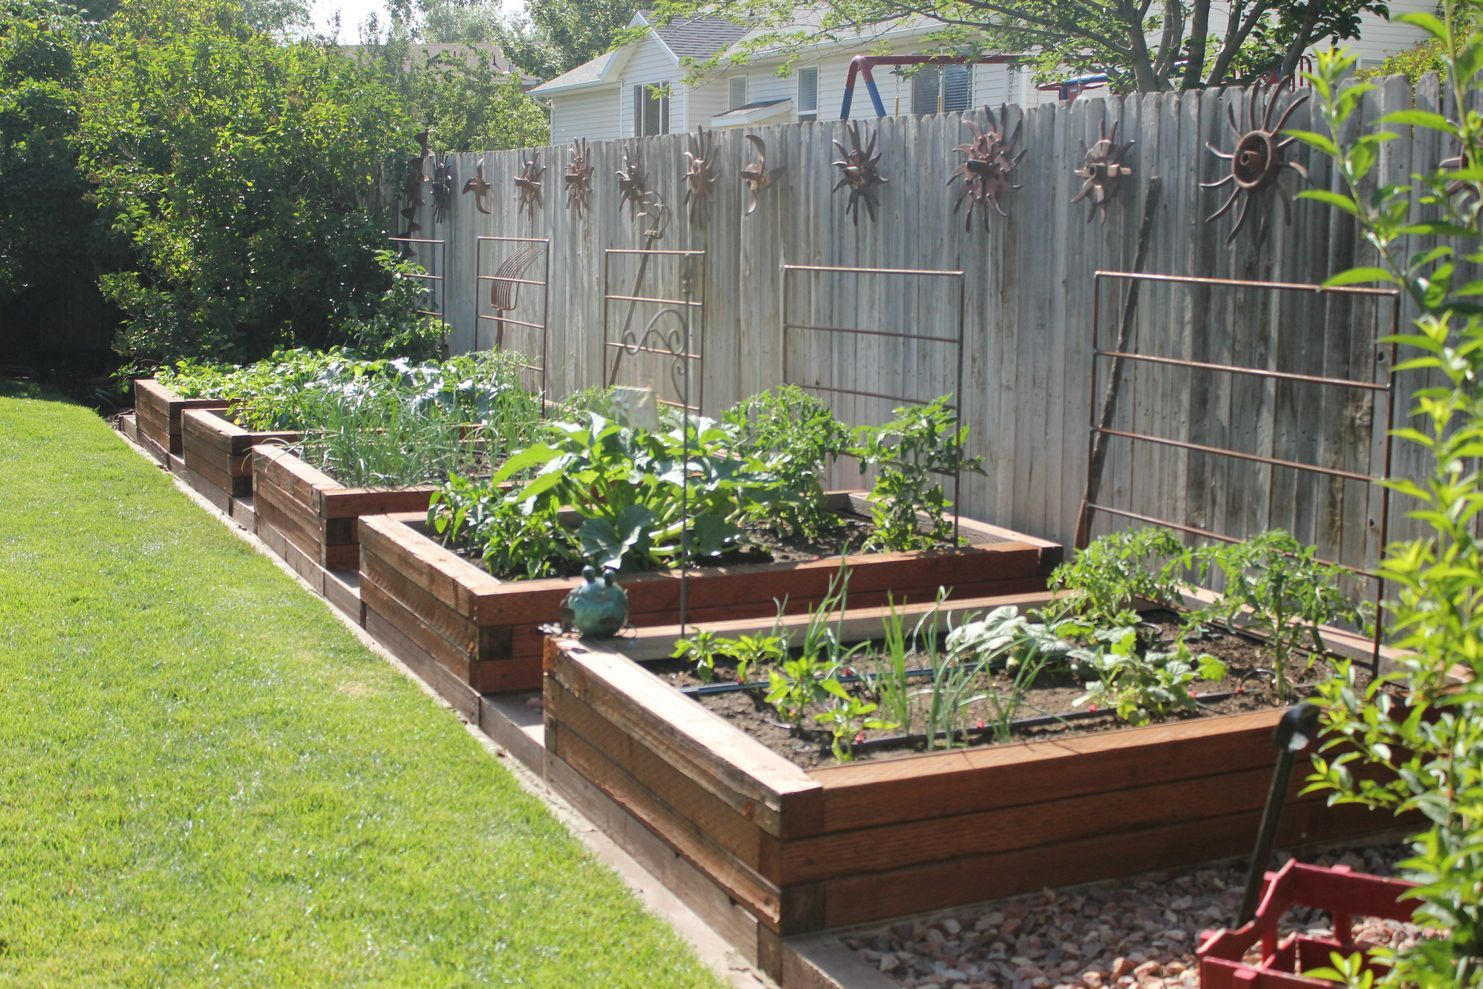 8 Affordable Backyard Vegetable Garden Designs Ideas - ROUNDECOR